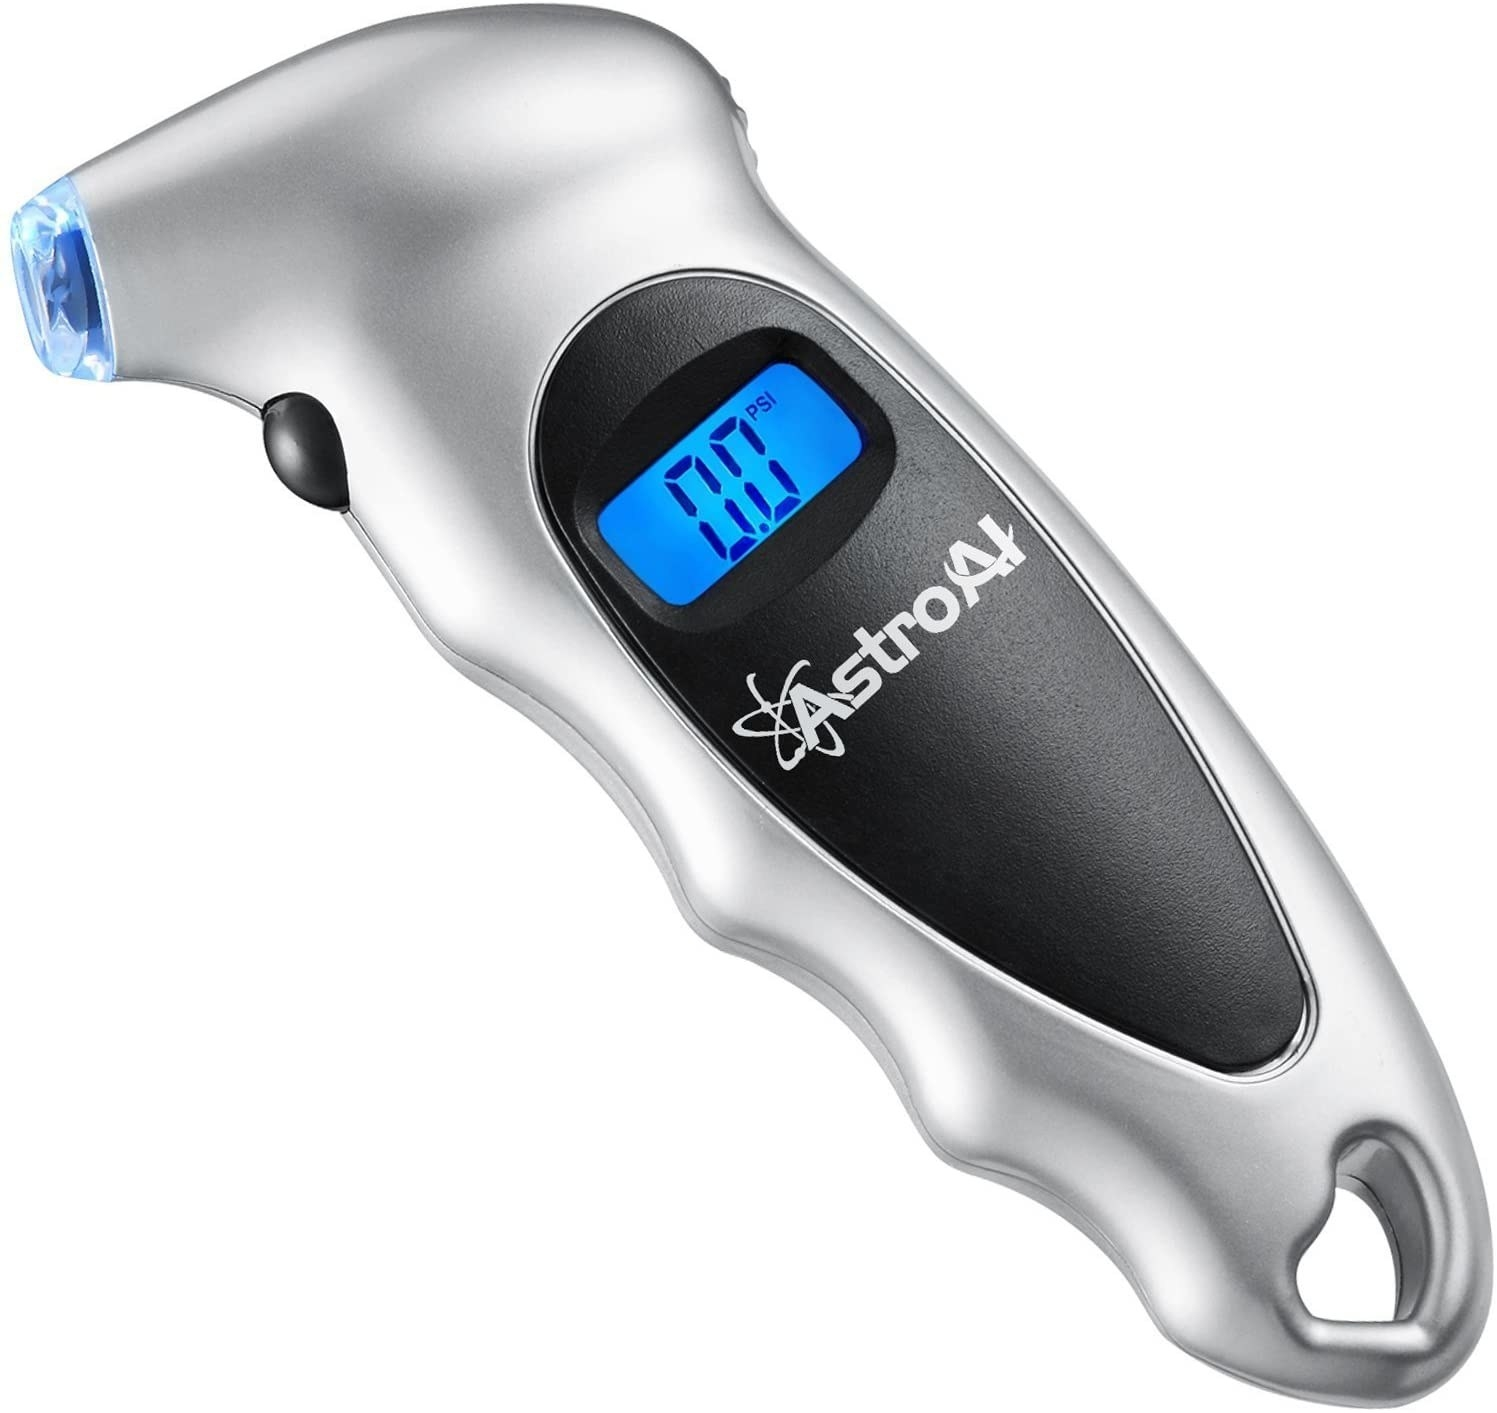 Silver and black tire pressure gauge with blue light-up screen